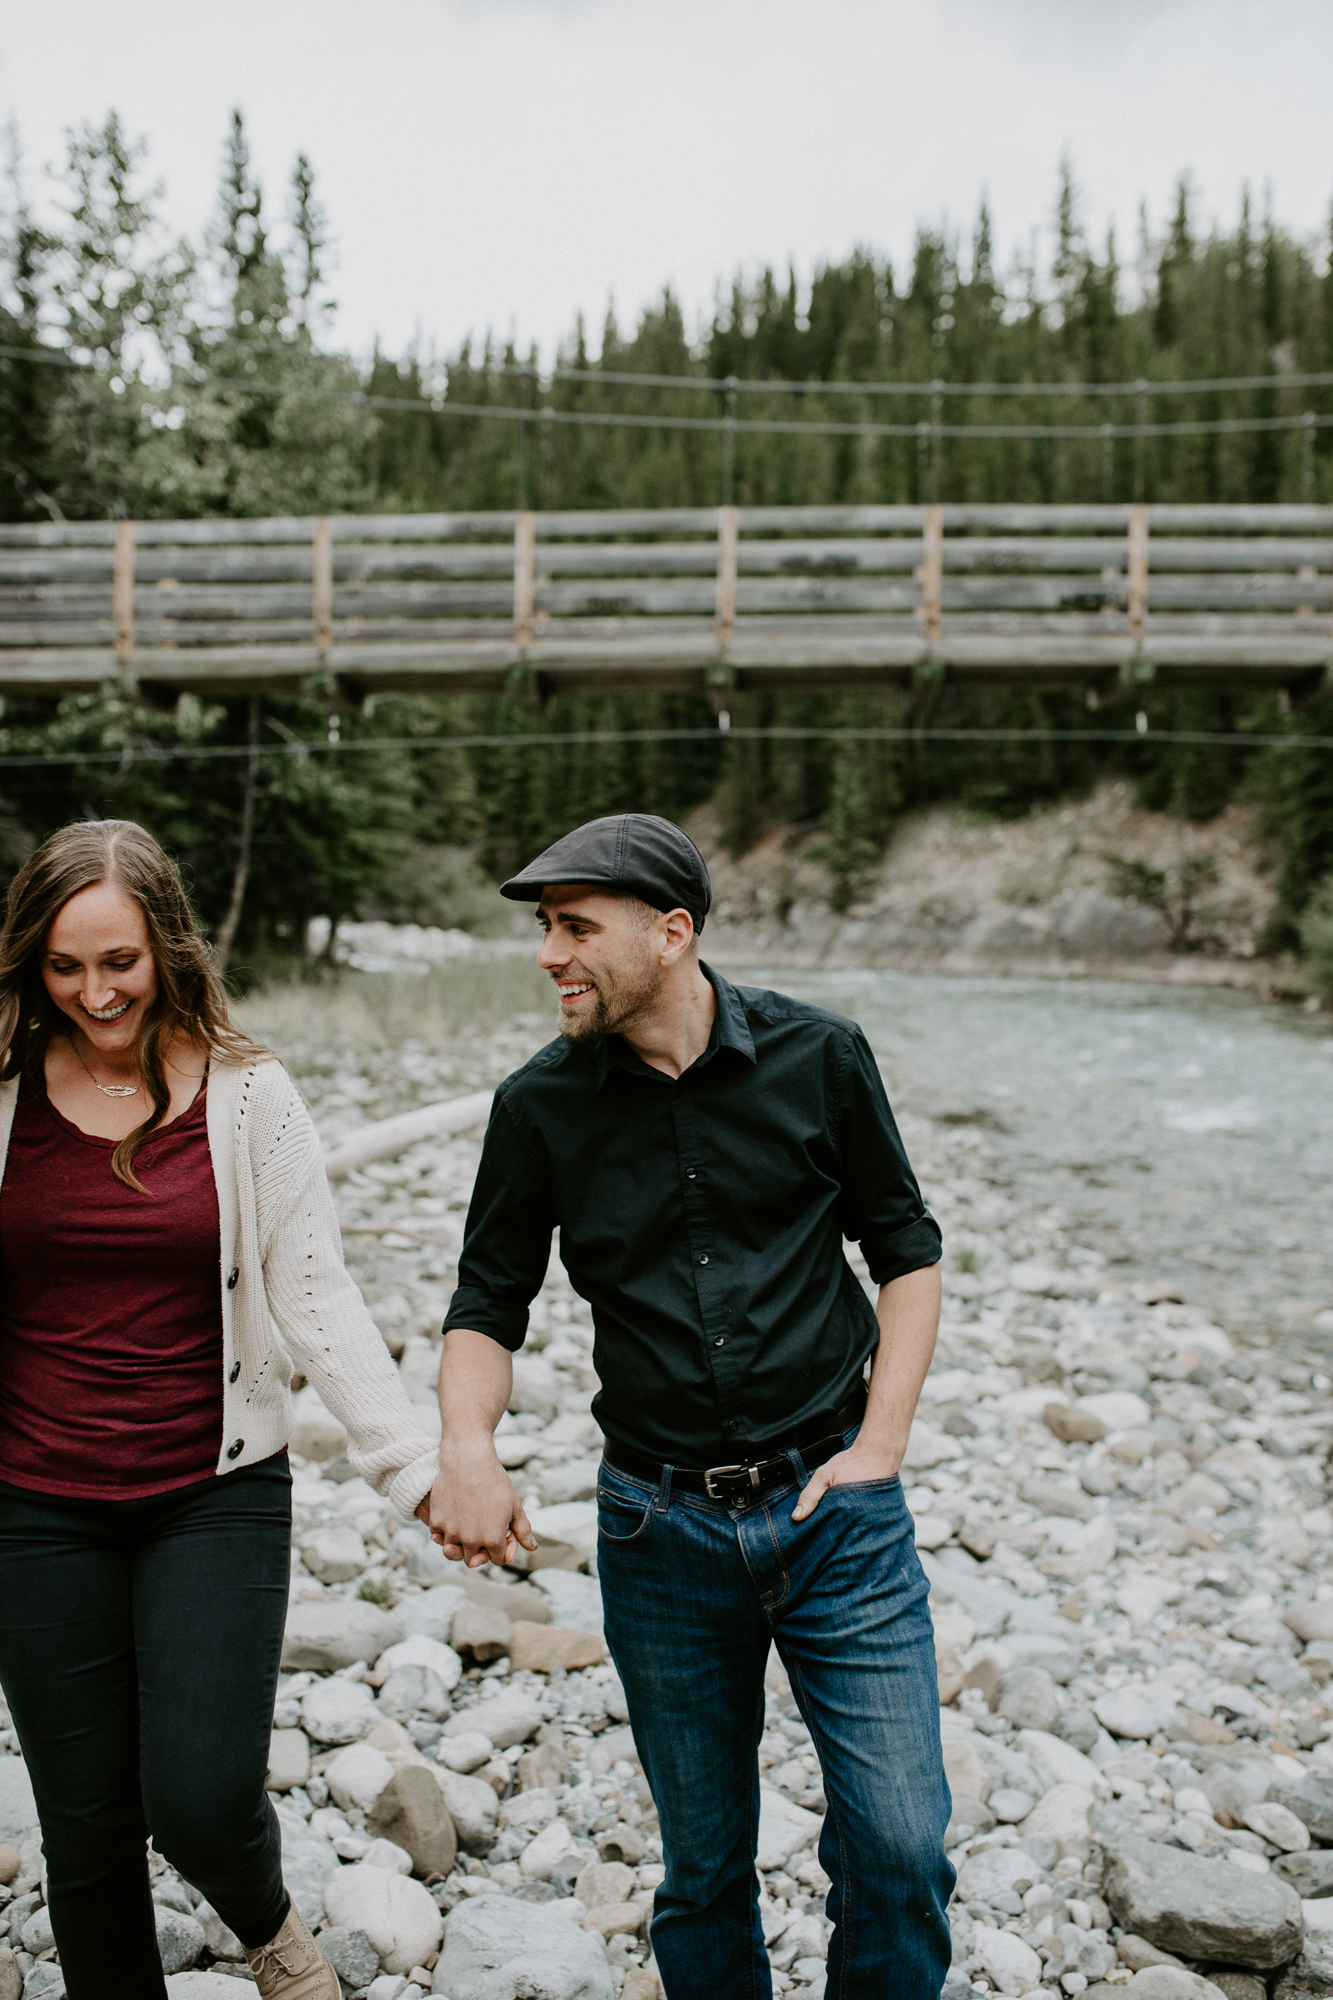 Kananaskis-engagement-session-photographer-jm-10.jpg